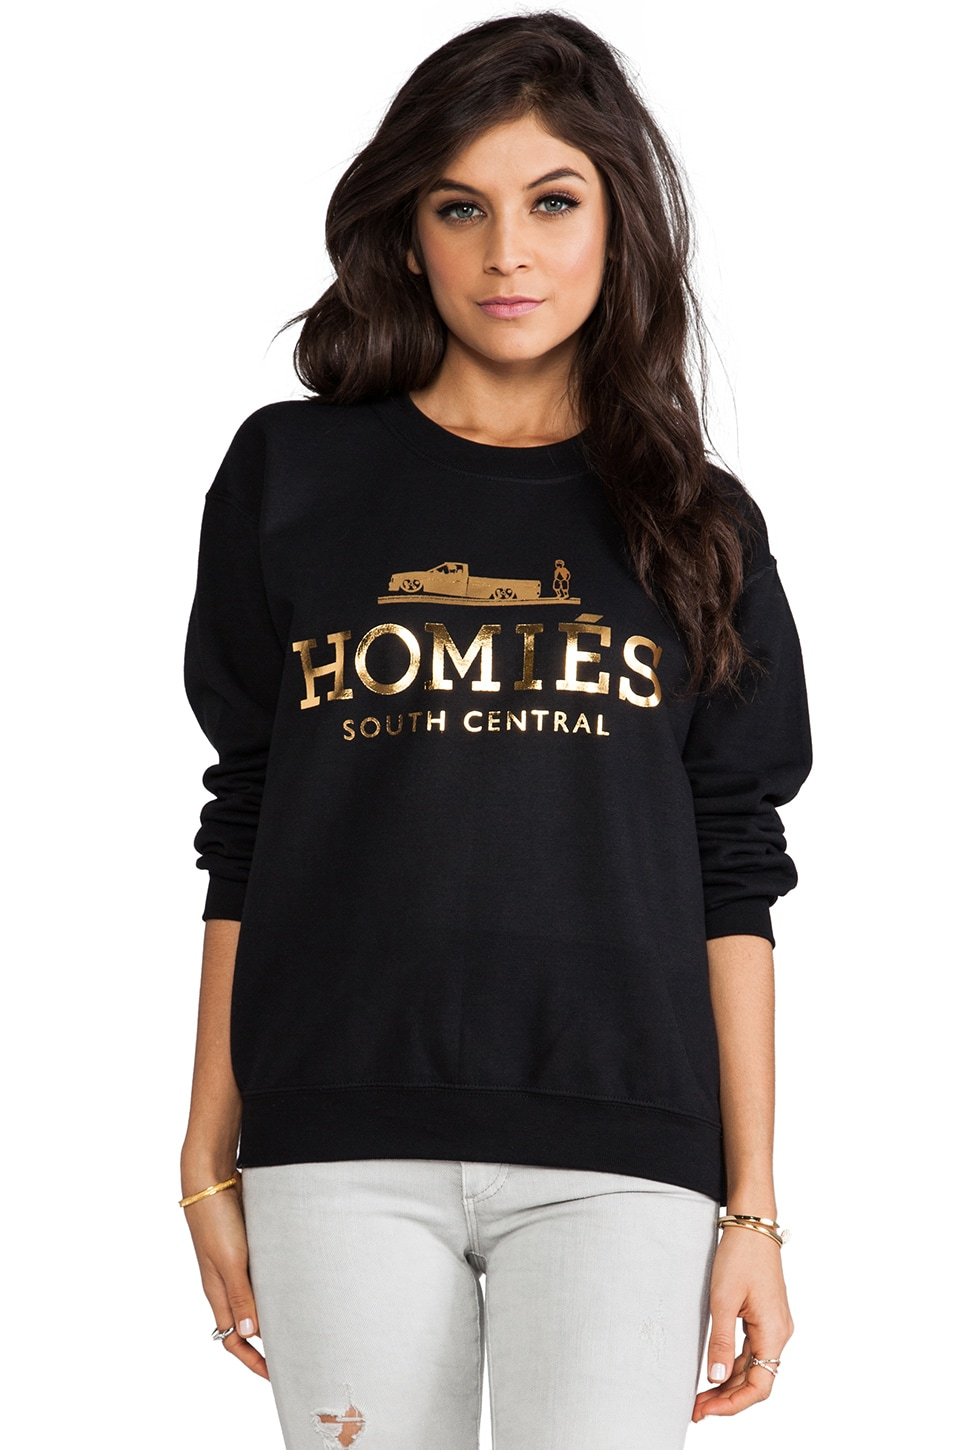 Brian Lichtenberg Homies Sweatshirt in Black/Gold